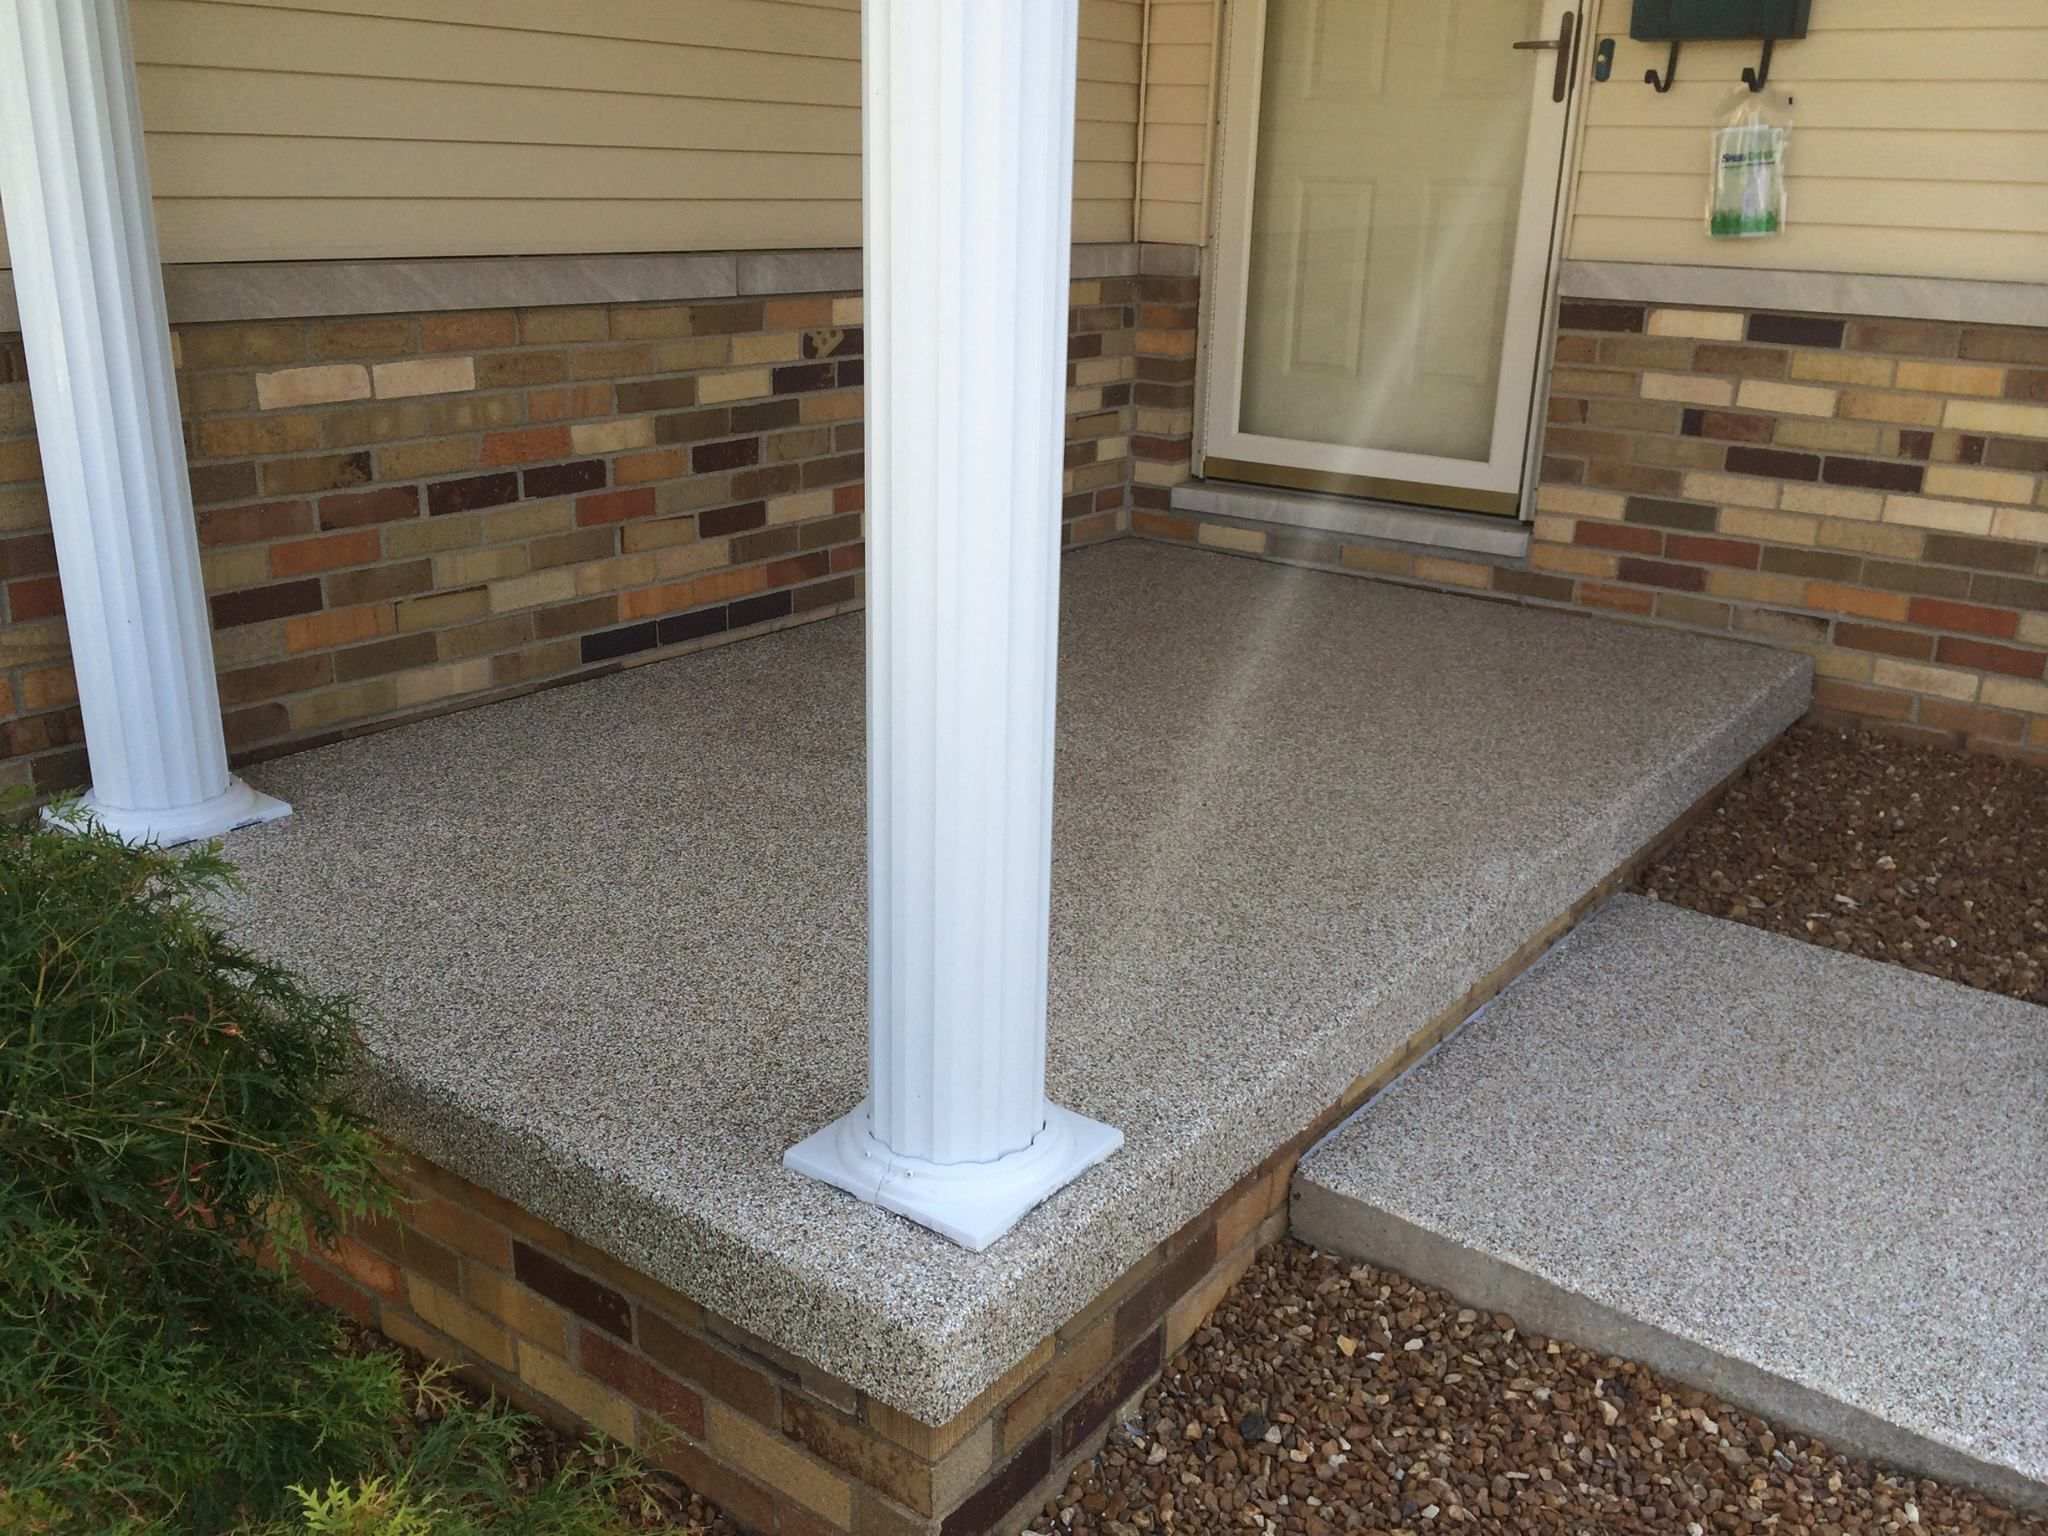 Concrete Resurfacing Epoxy Flooring Peoria Bloomington Il Painted Concrete Porch Concrete Porch Concrete Front Porch